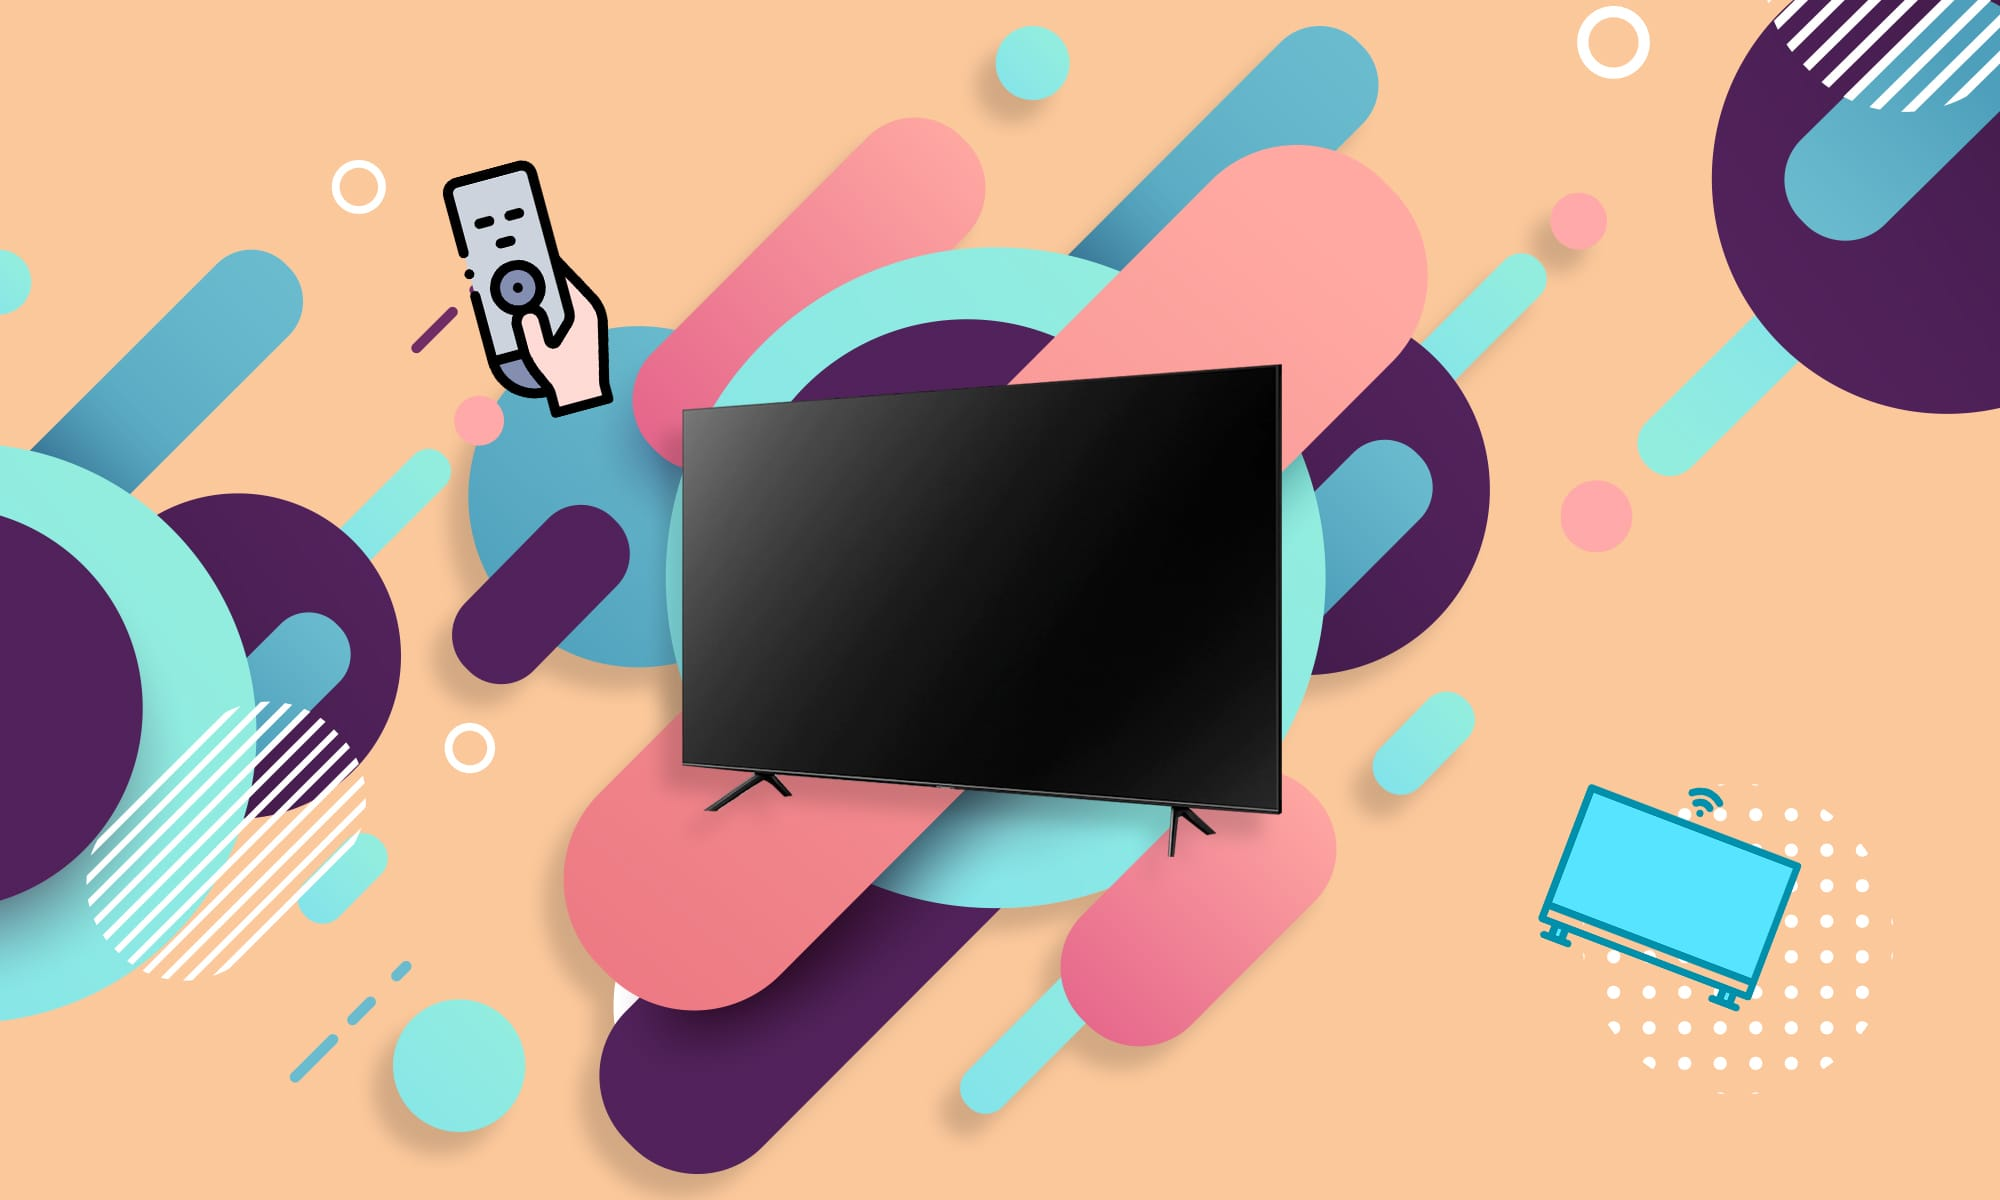 Best smart TVs to buy in 2021